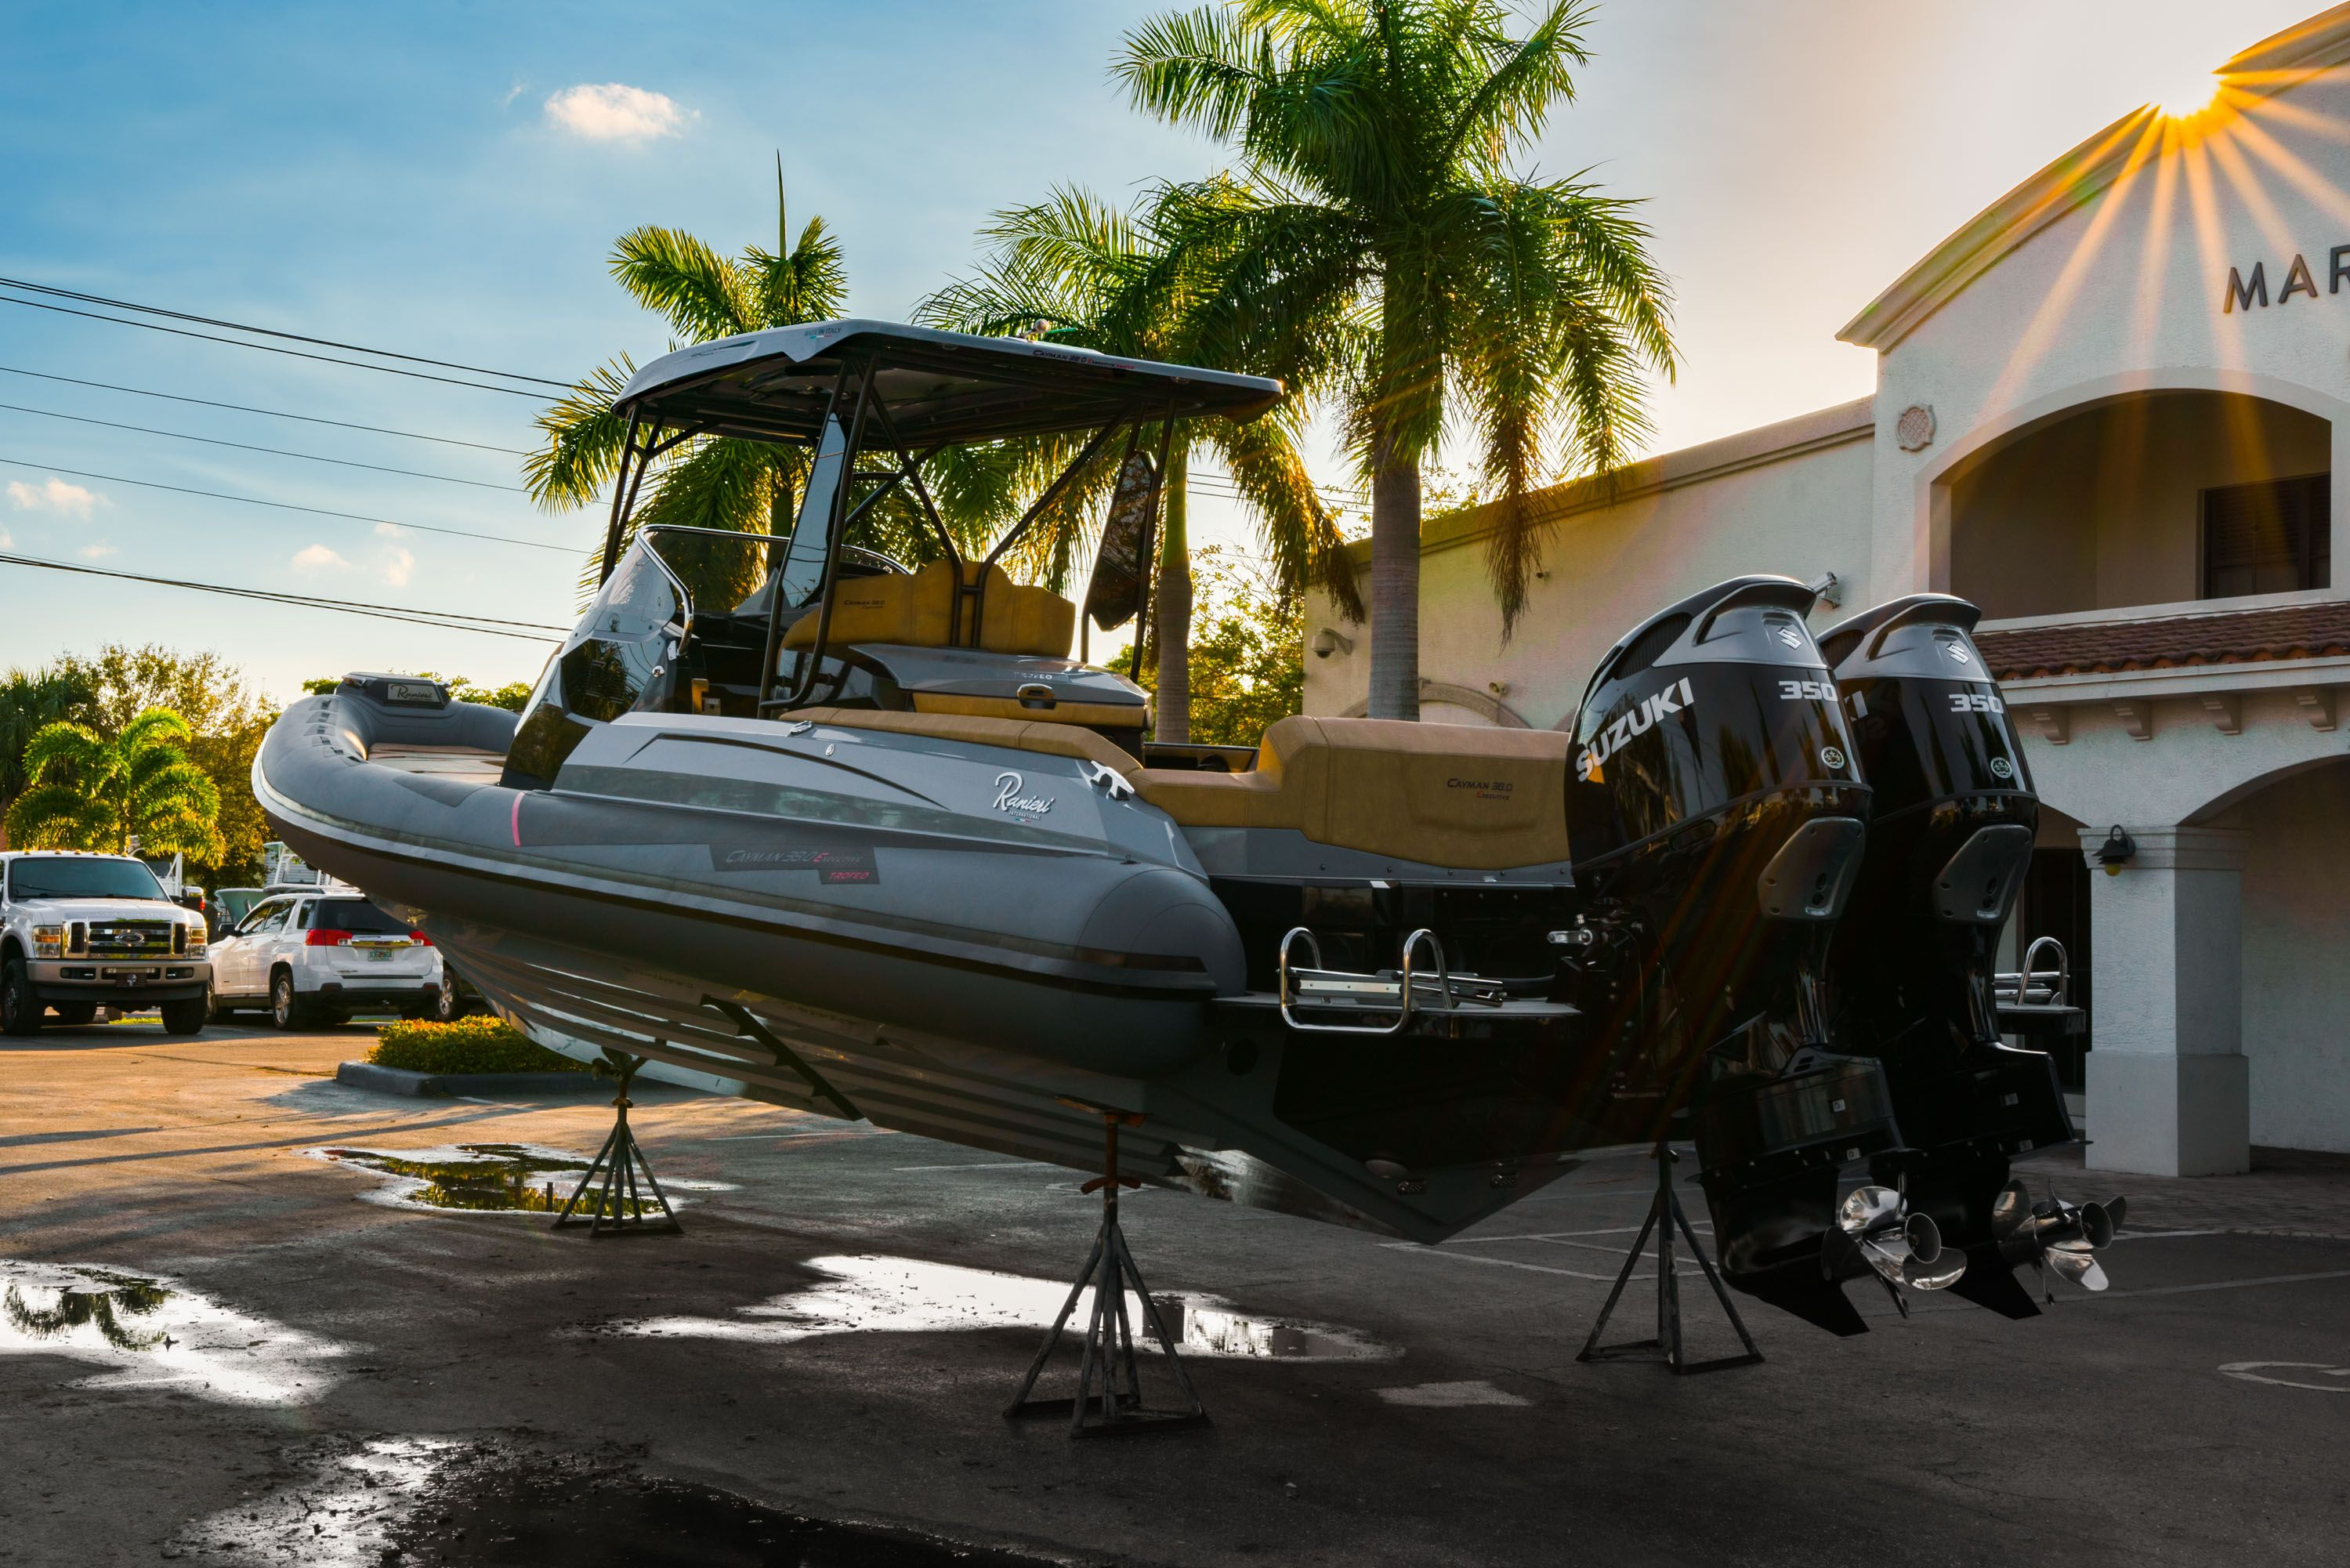 Thumbnail 1 for New 2019 Ranieri Cayman 38 Executive boat for sale in West Palm Beach, FL